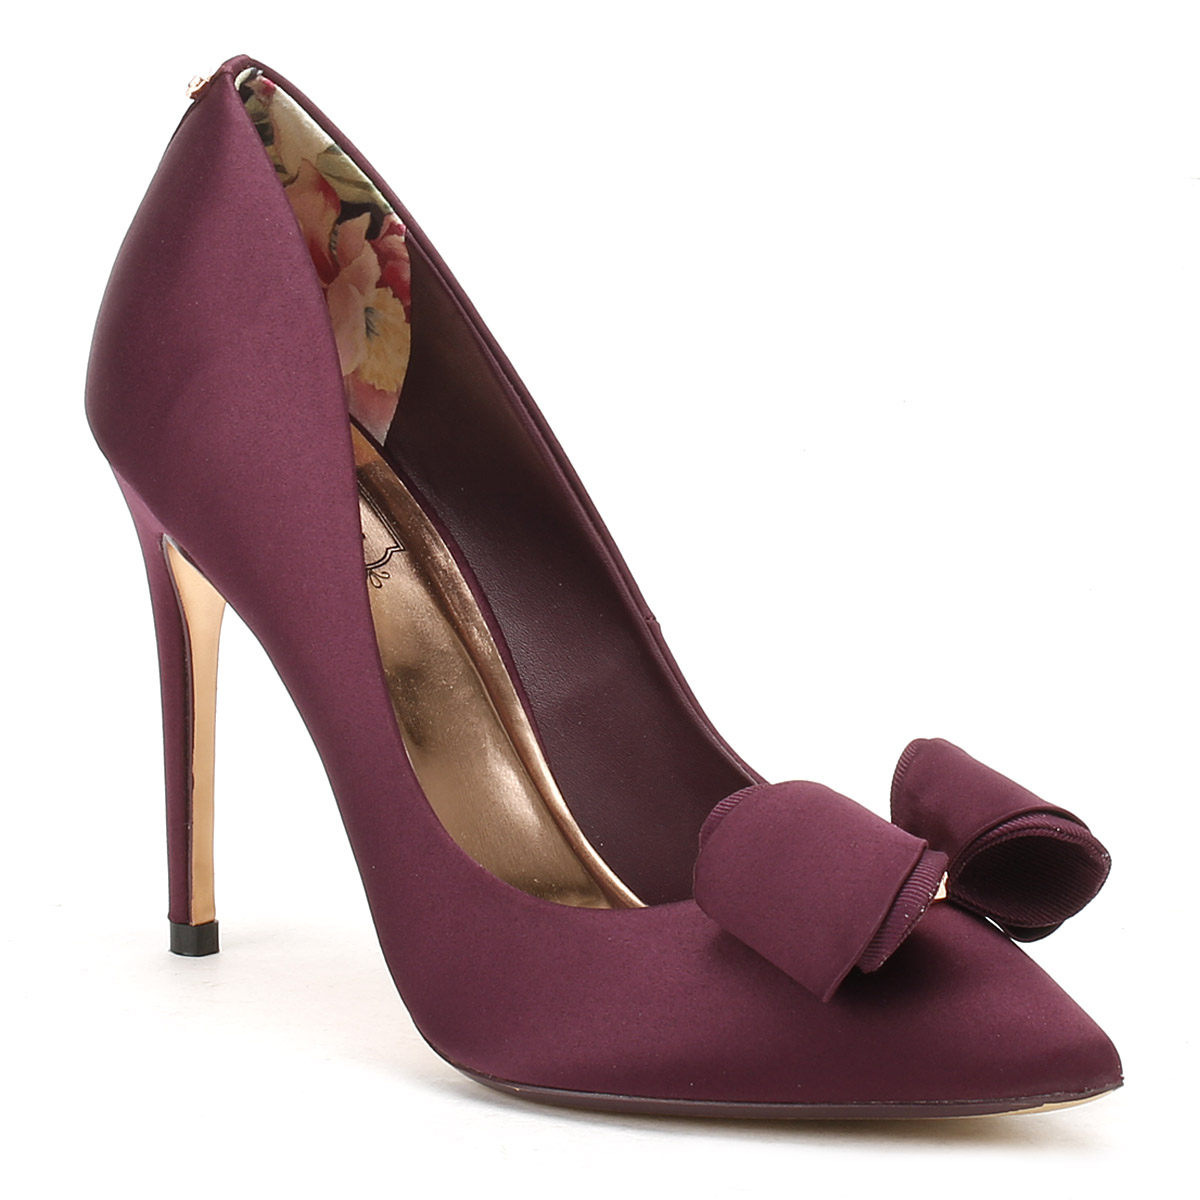 e66cadb506bb80 Details about Ted Baker Womens Purple Textile Azeline High Heels Stiletto  Court Shoes